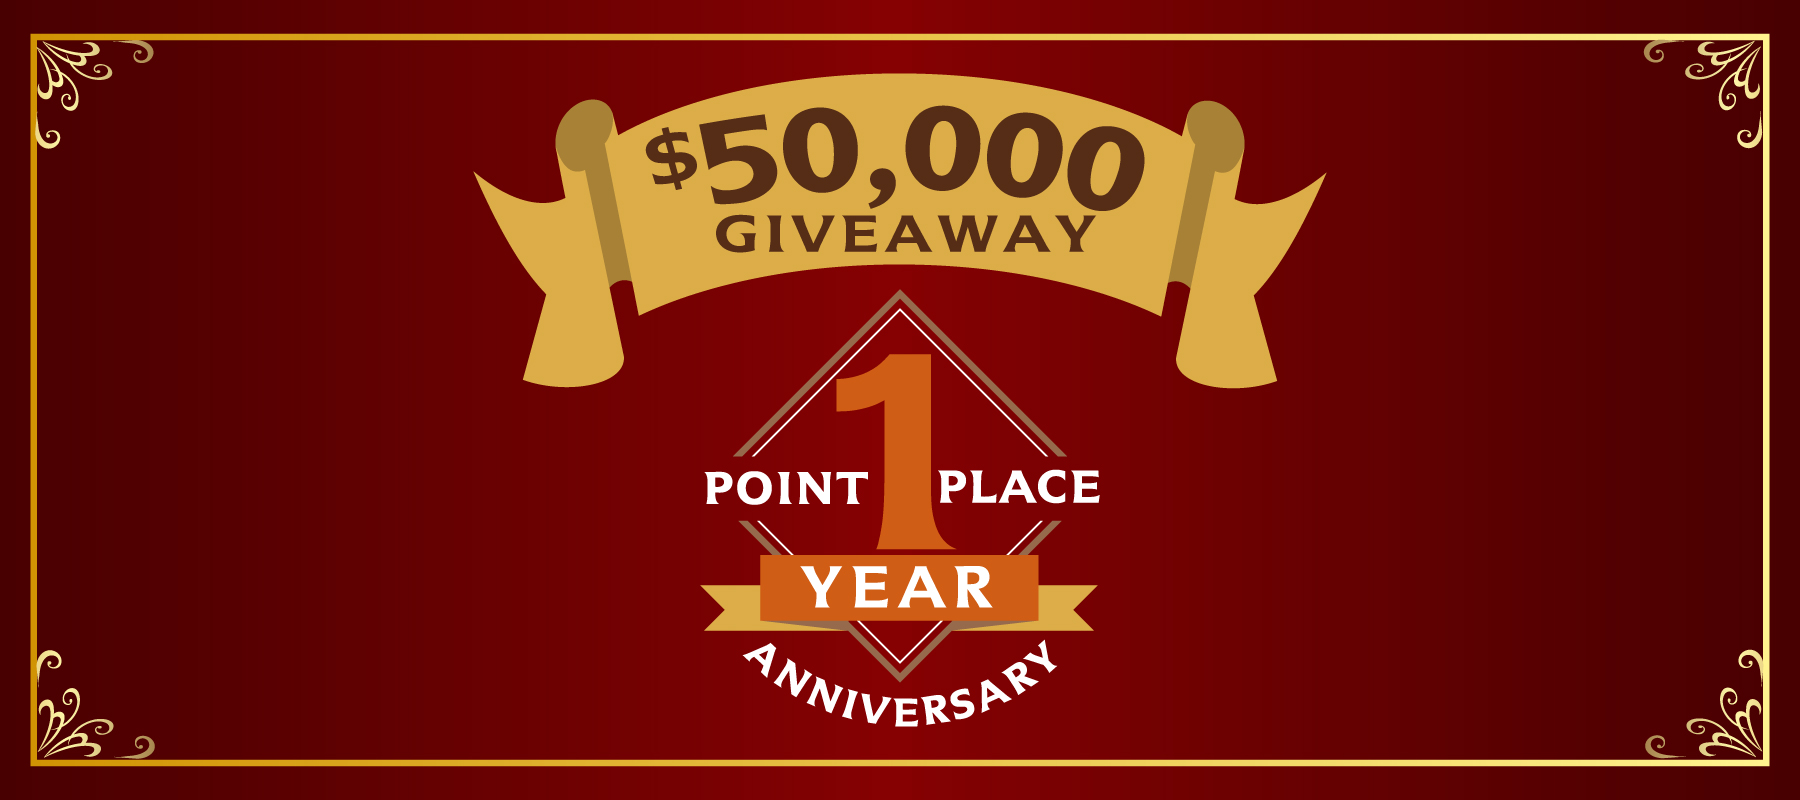 Point Place 1 Year Anniversary $50,000 Giveaway